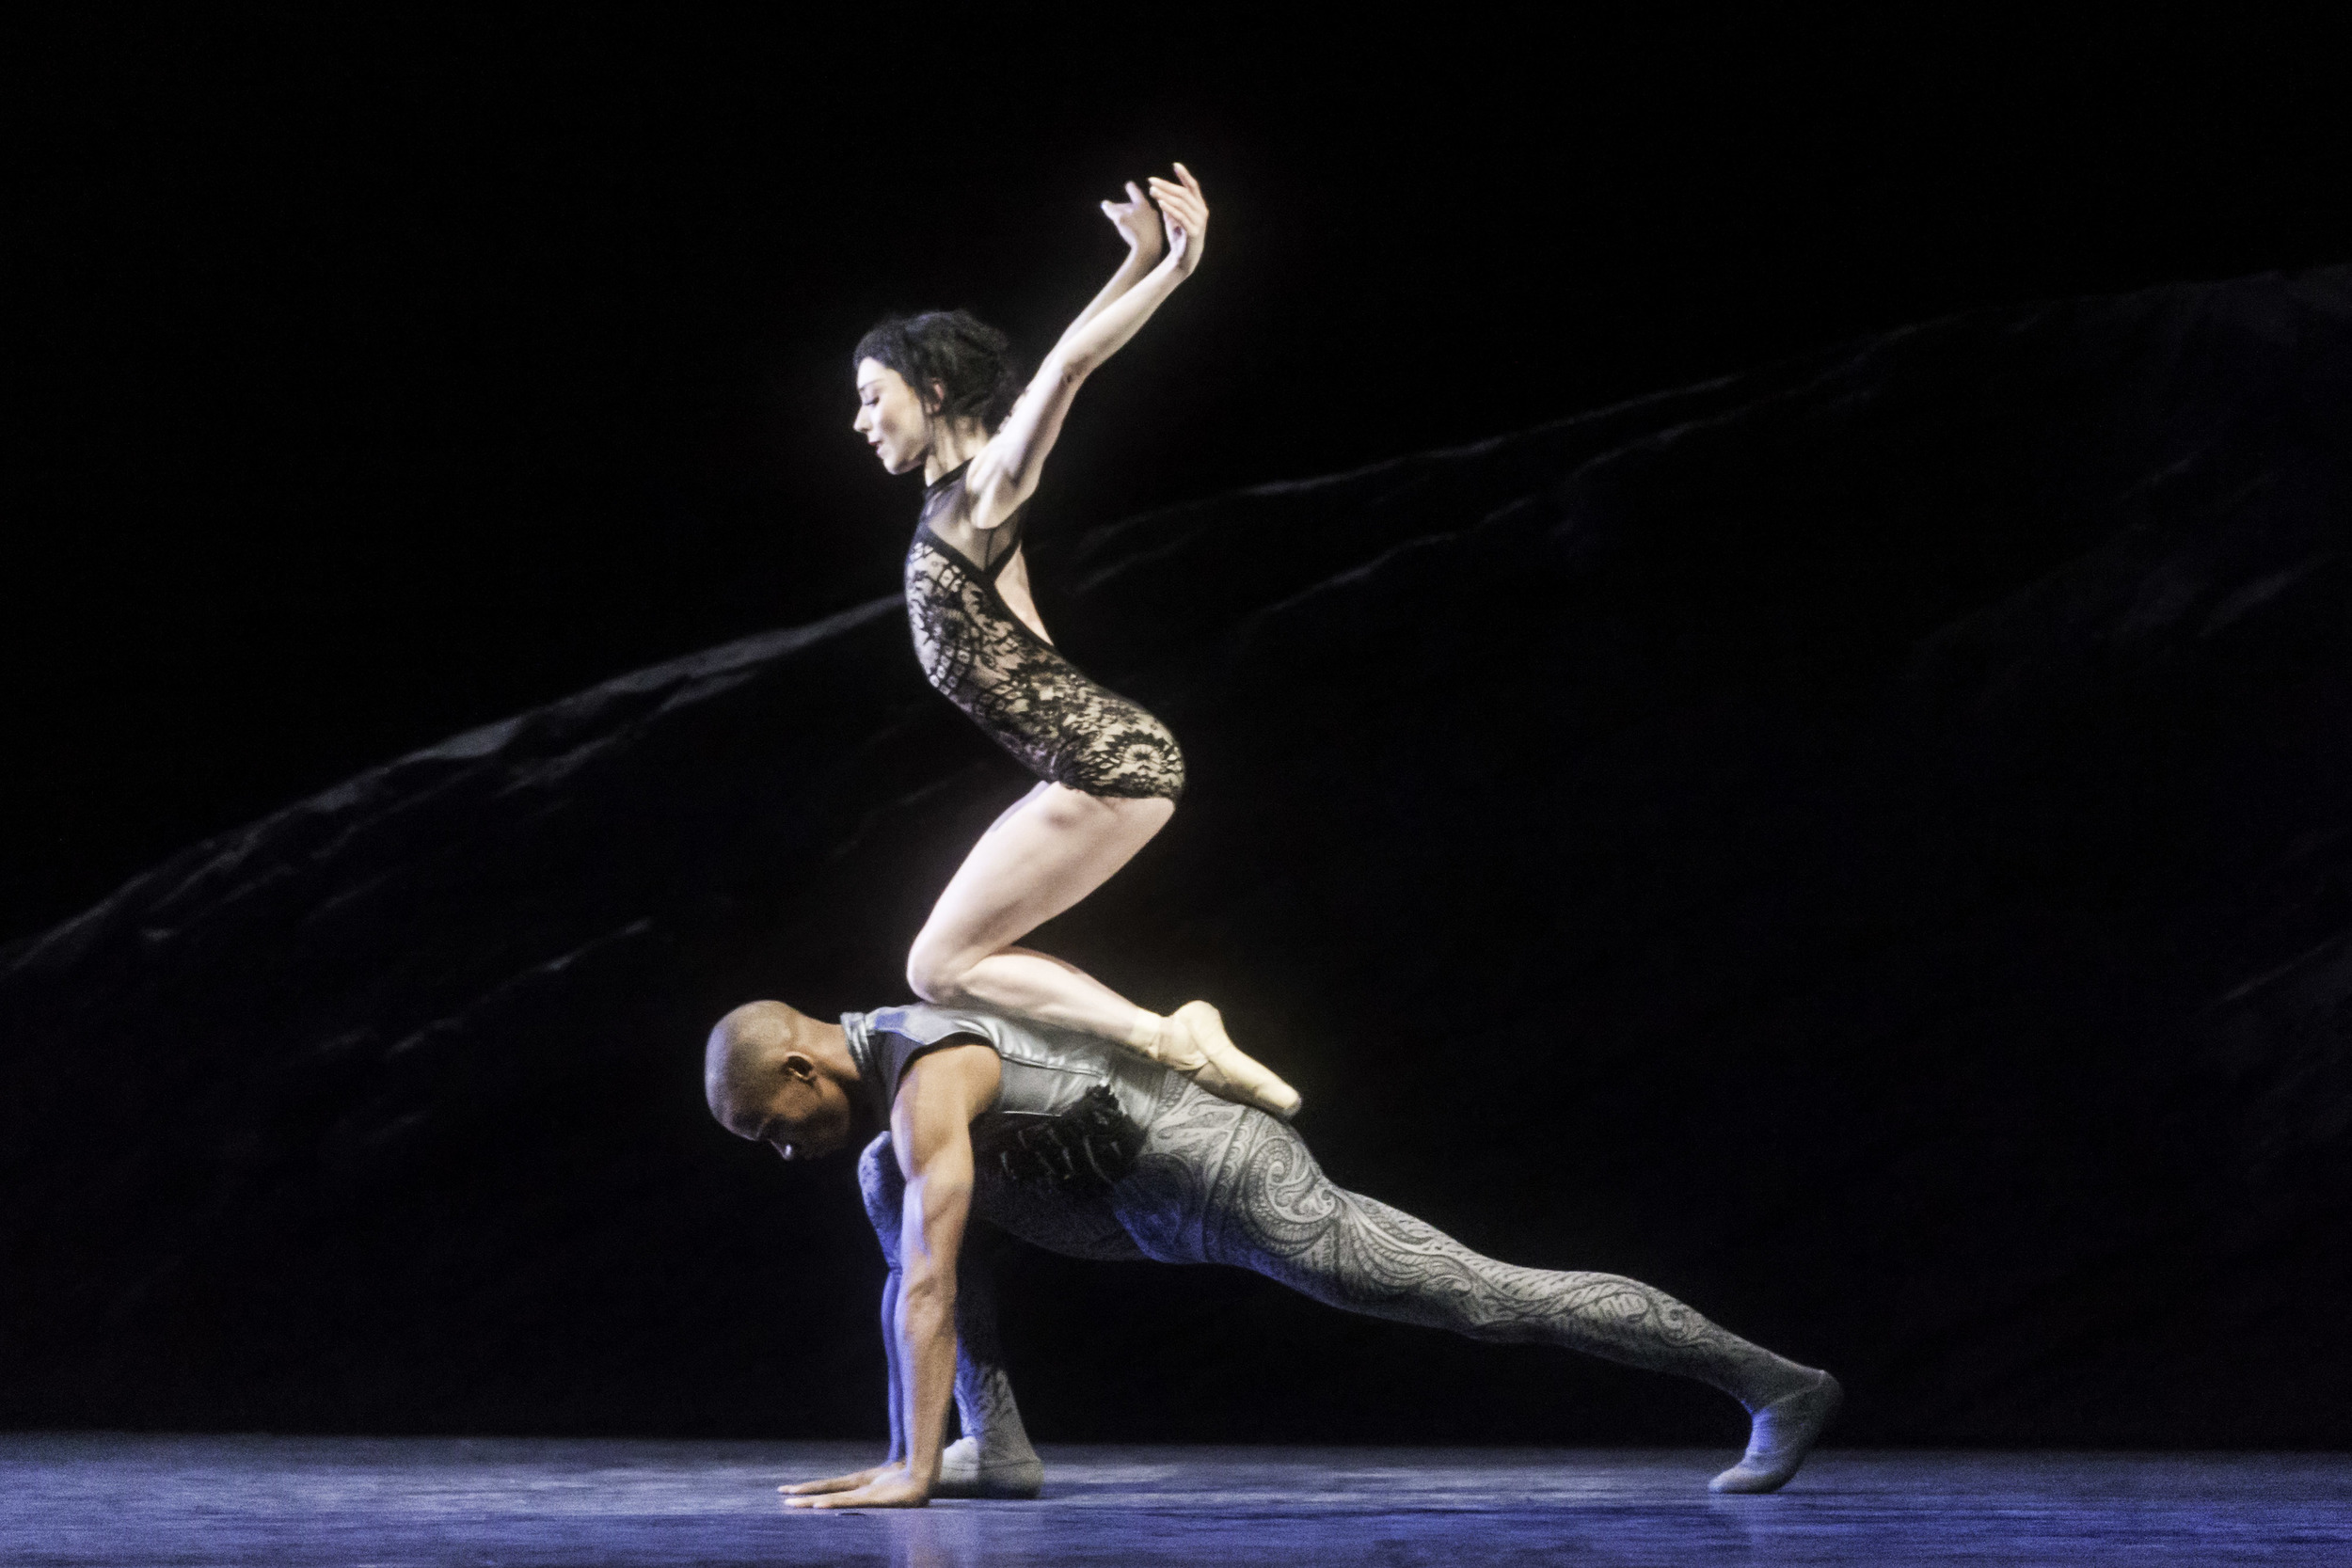 Sarah Lamb and Eric Underwood of the Royal Ballet Company demonstrate power and balance in  Raven Girl. Image supplied by the Royal Ballet Company, photo by  Johan Persson.